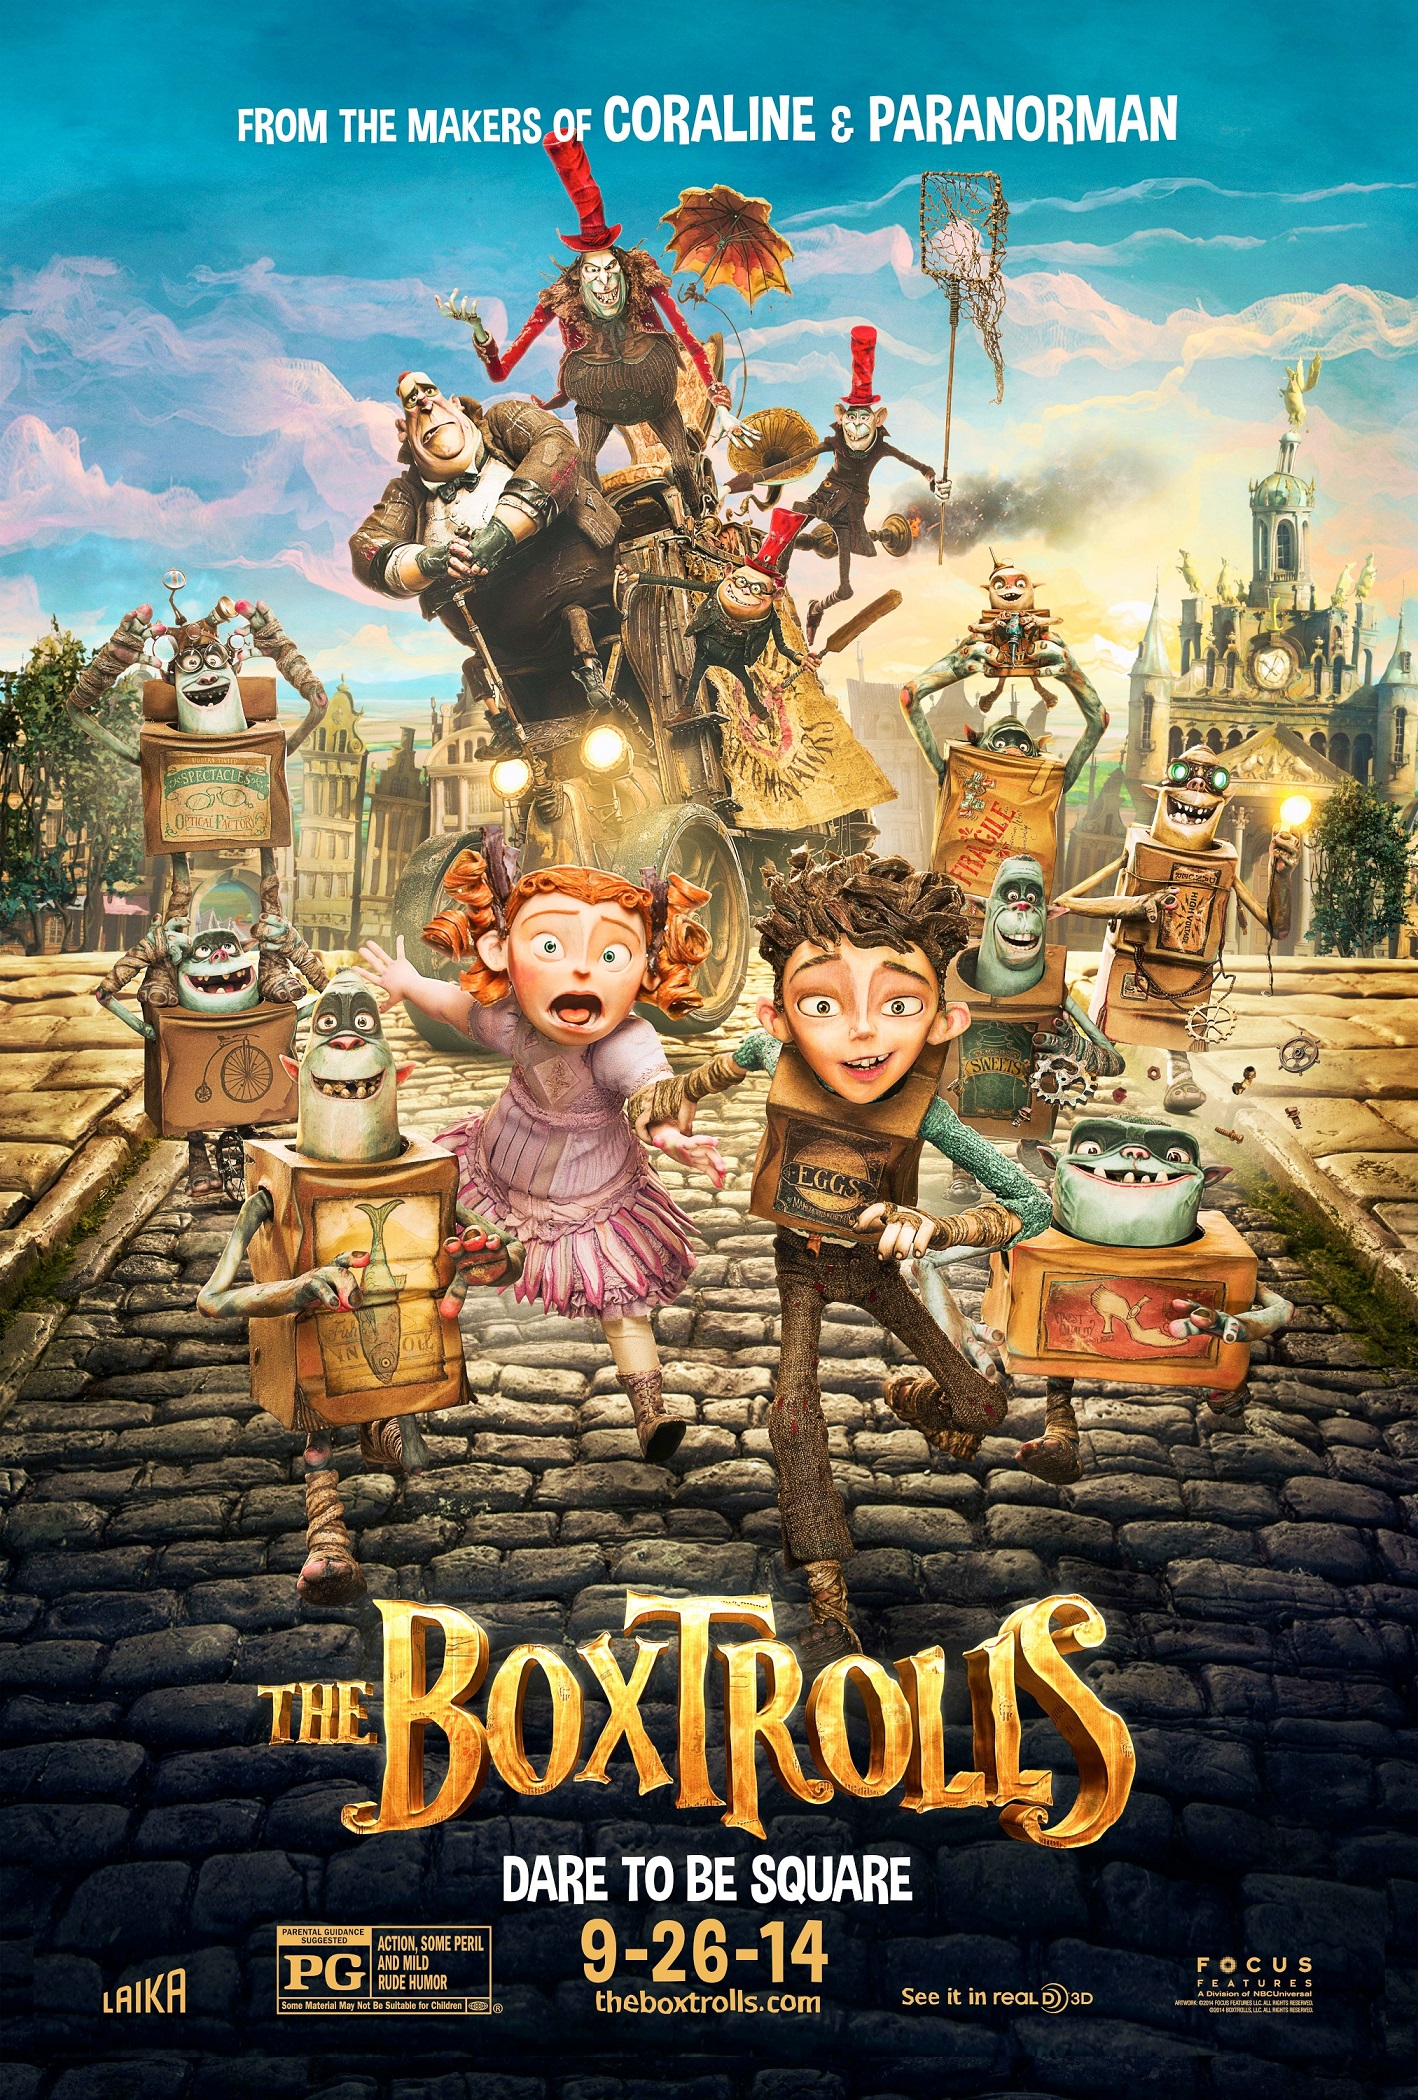 THE BOXTROLLS-Official Poster Banner PROMO XXLG-08AGOSTO2014